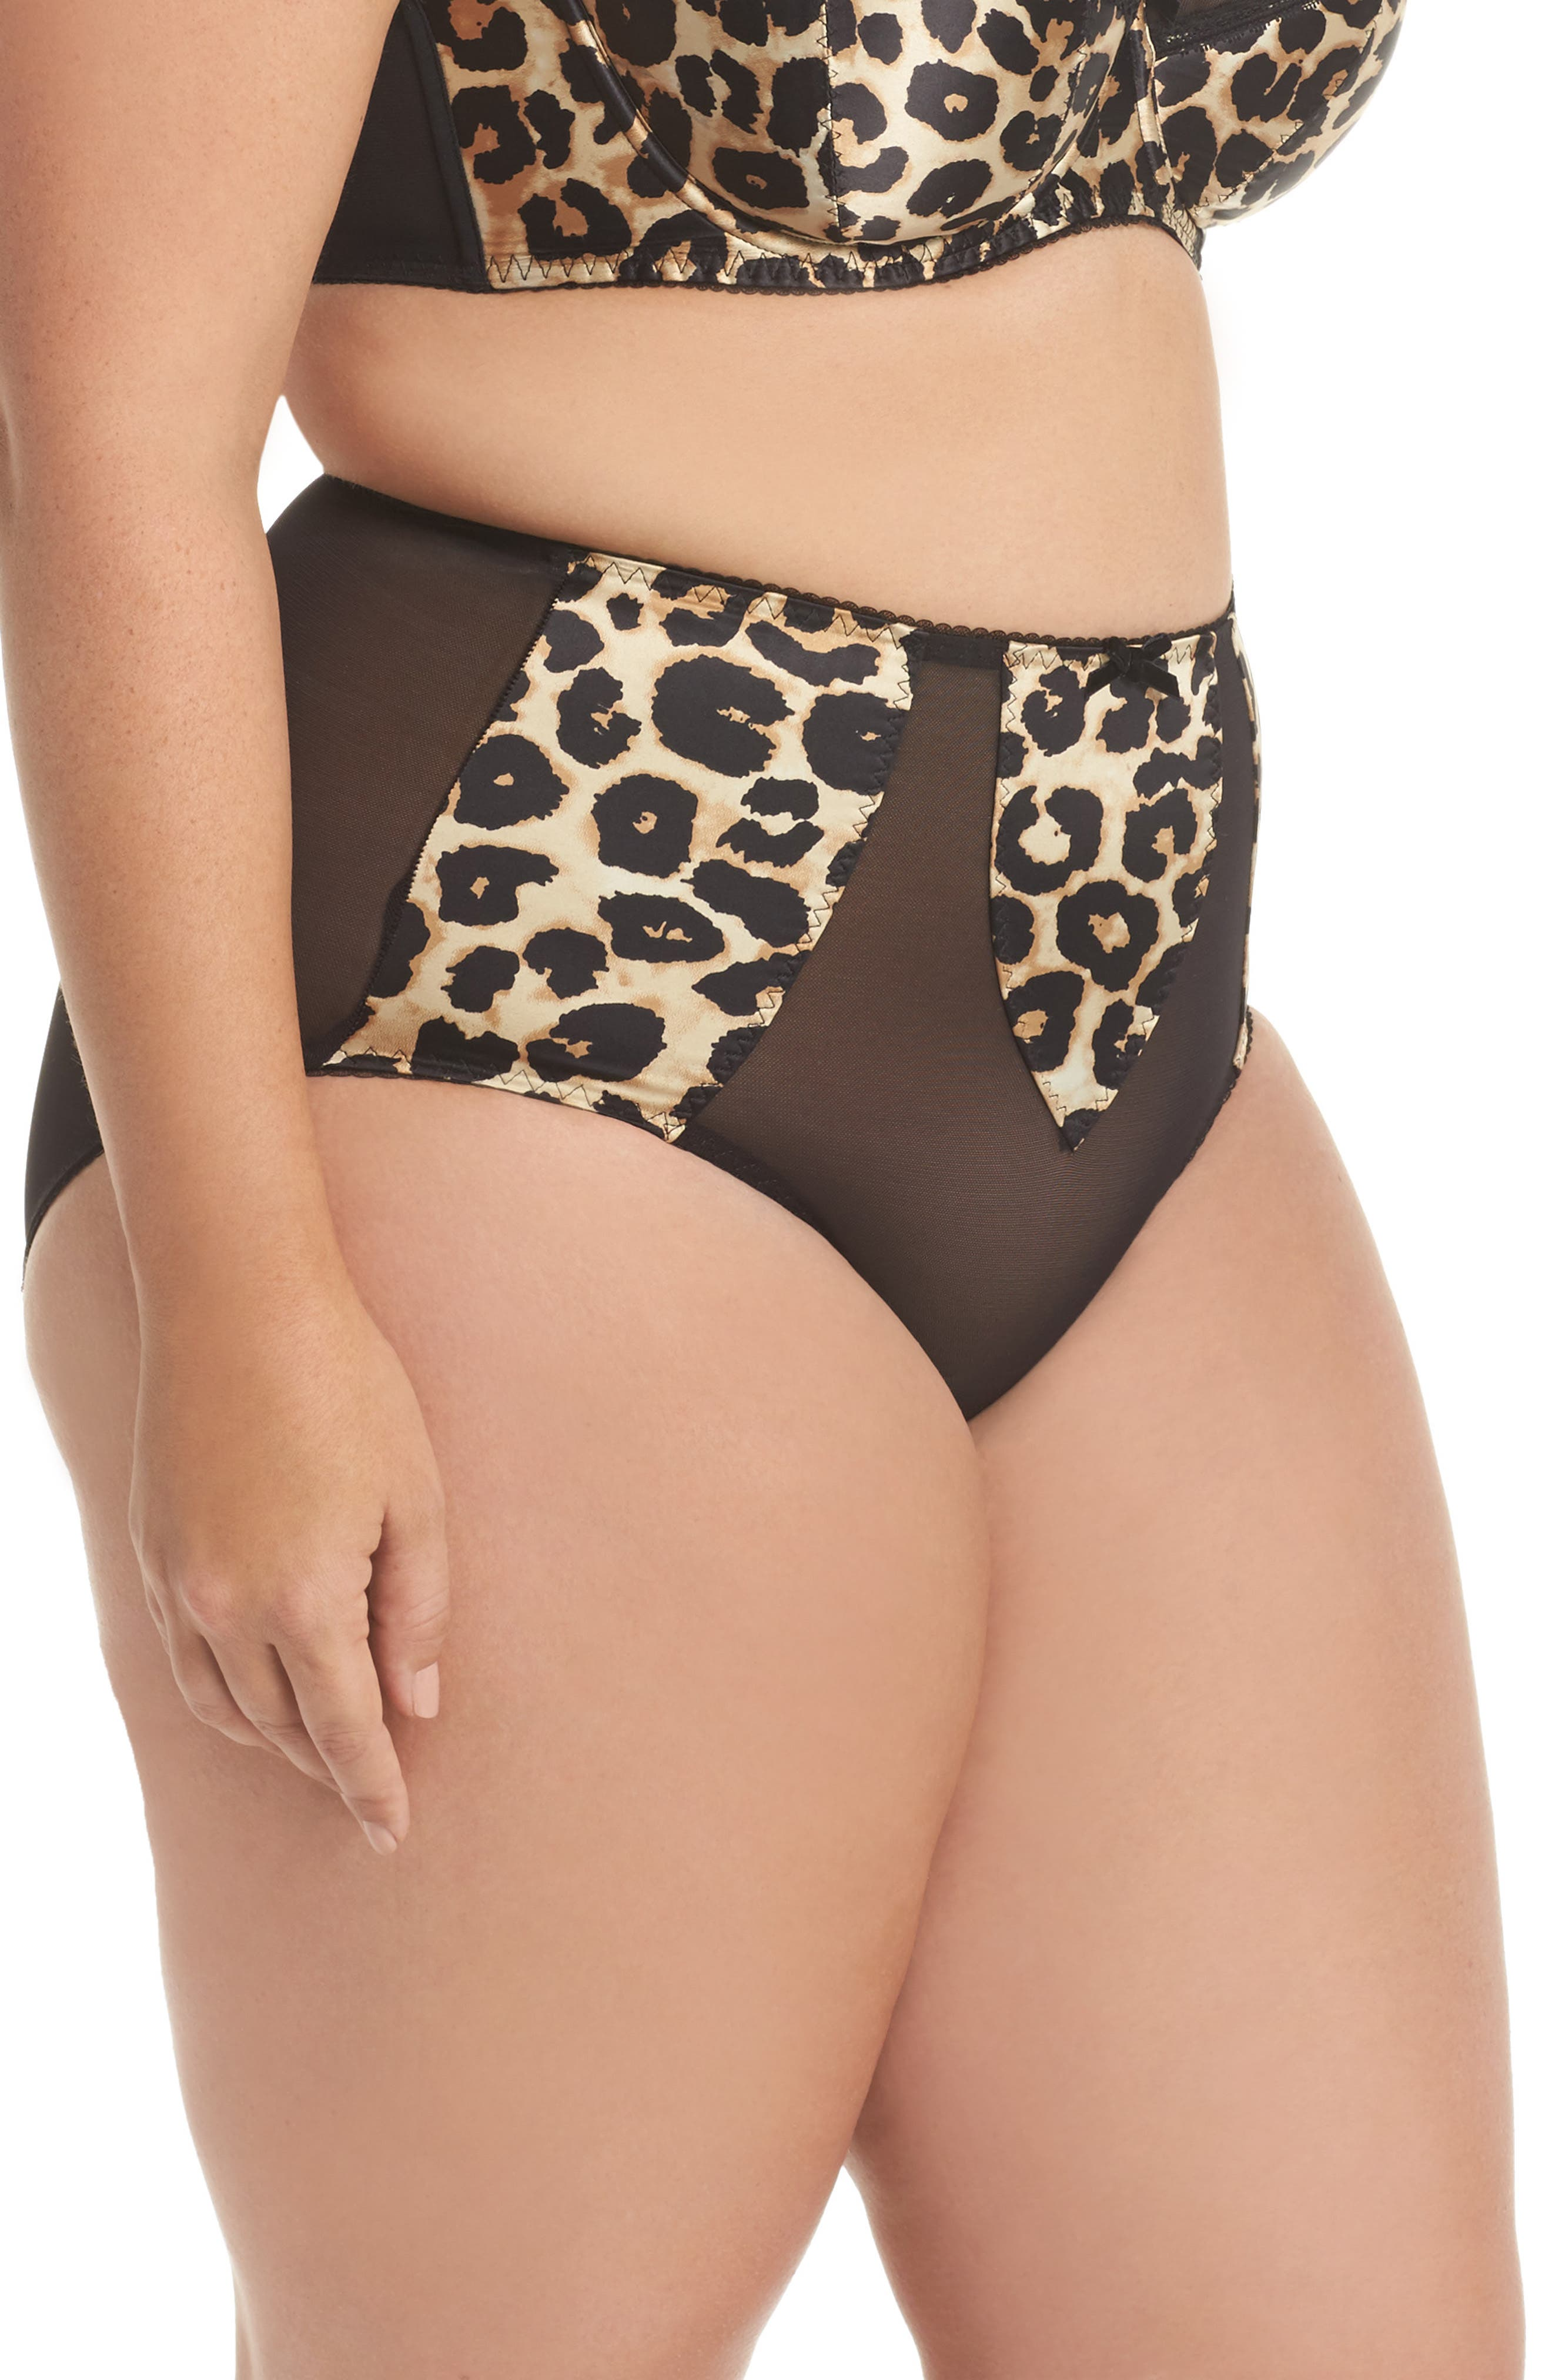 Sheer Witchery - Sophisticat Shaping Briefs,                             Alternate thumbnail 3, color,                             Animal Print